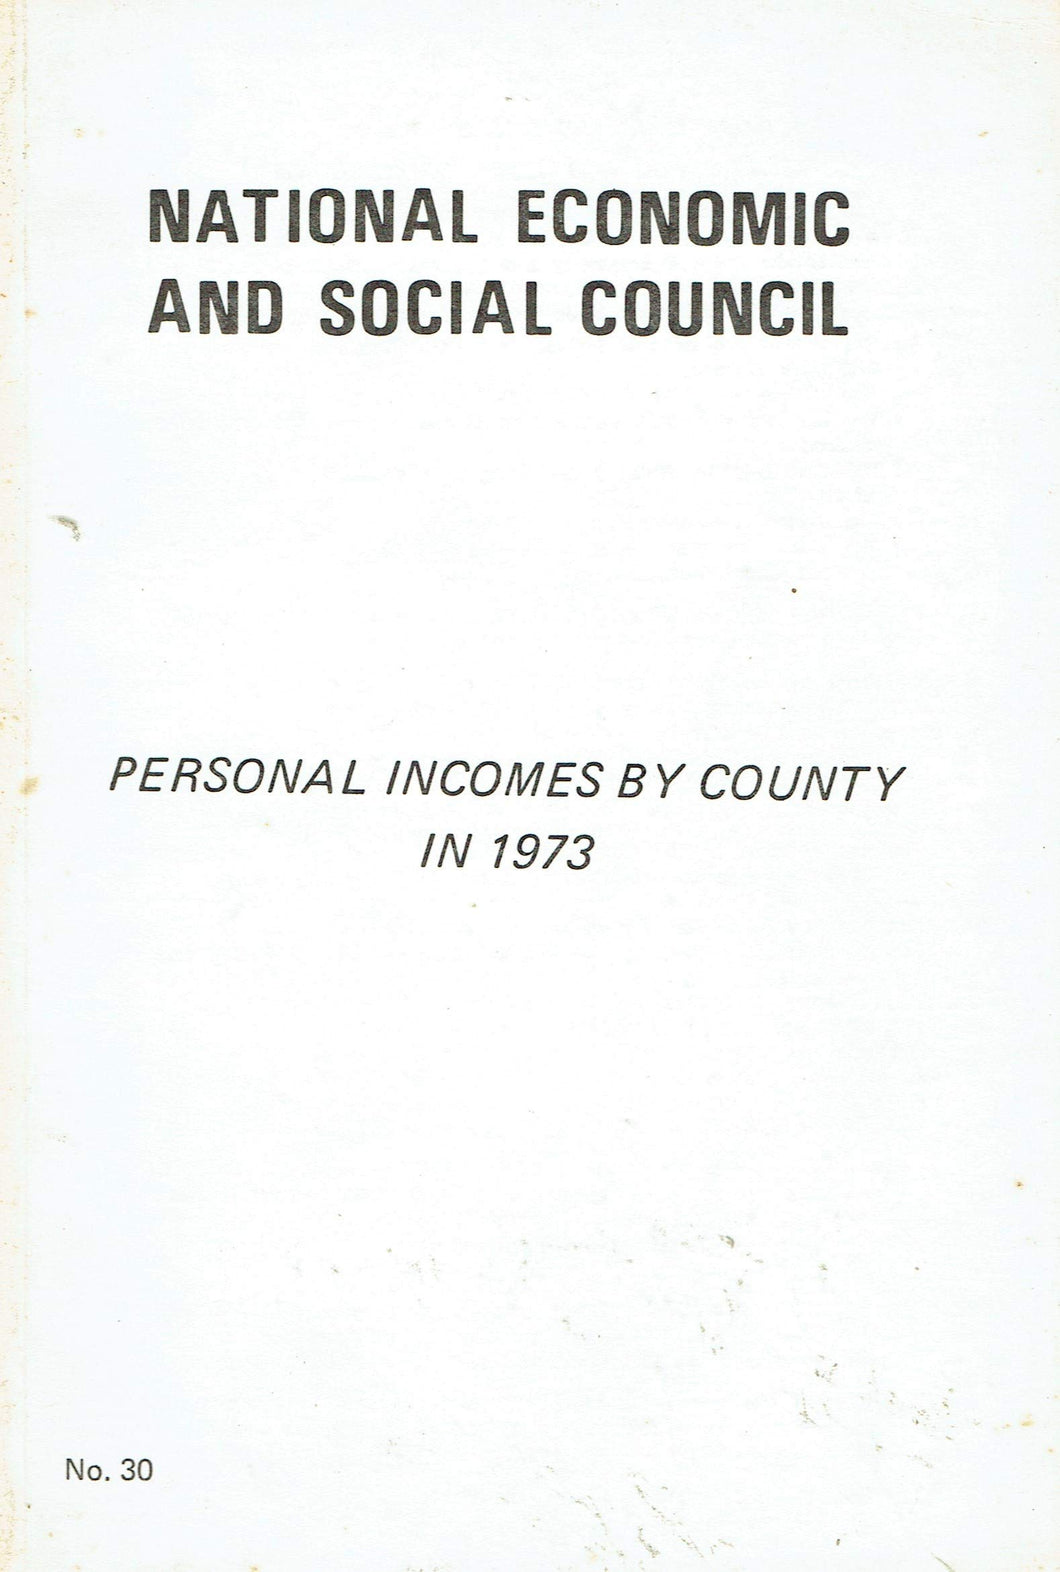 Personal Incomes by County in 1973: National Economic and Social Council